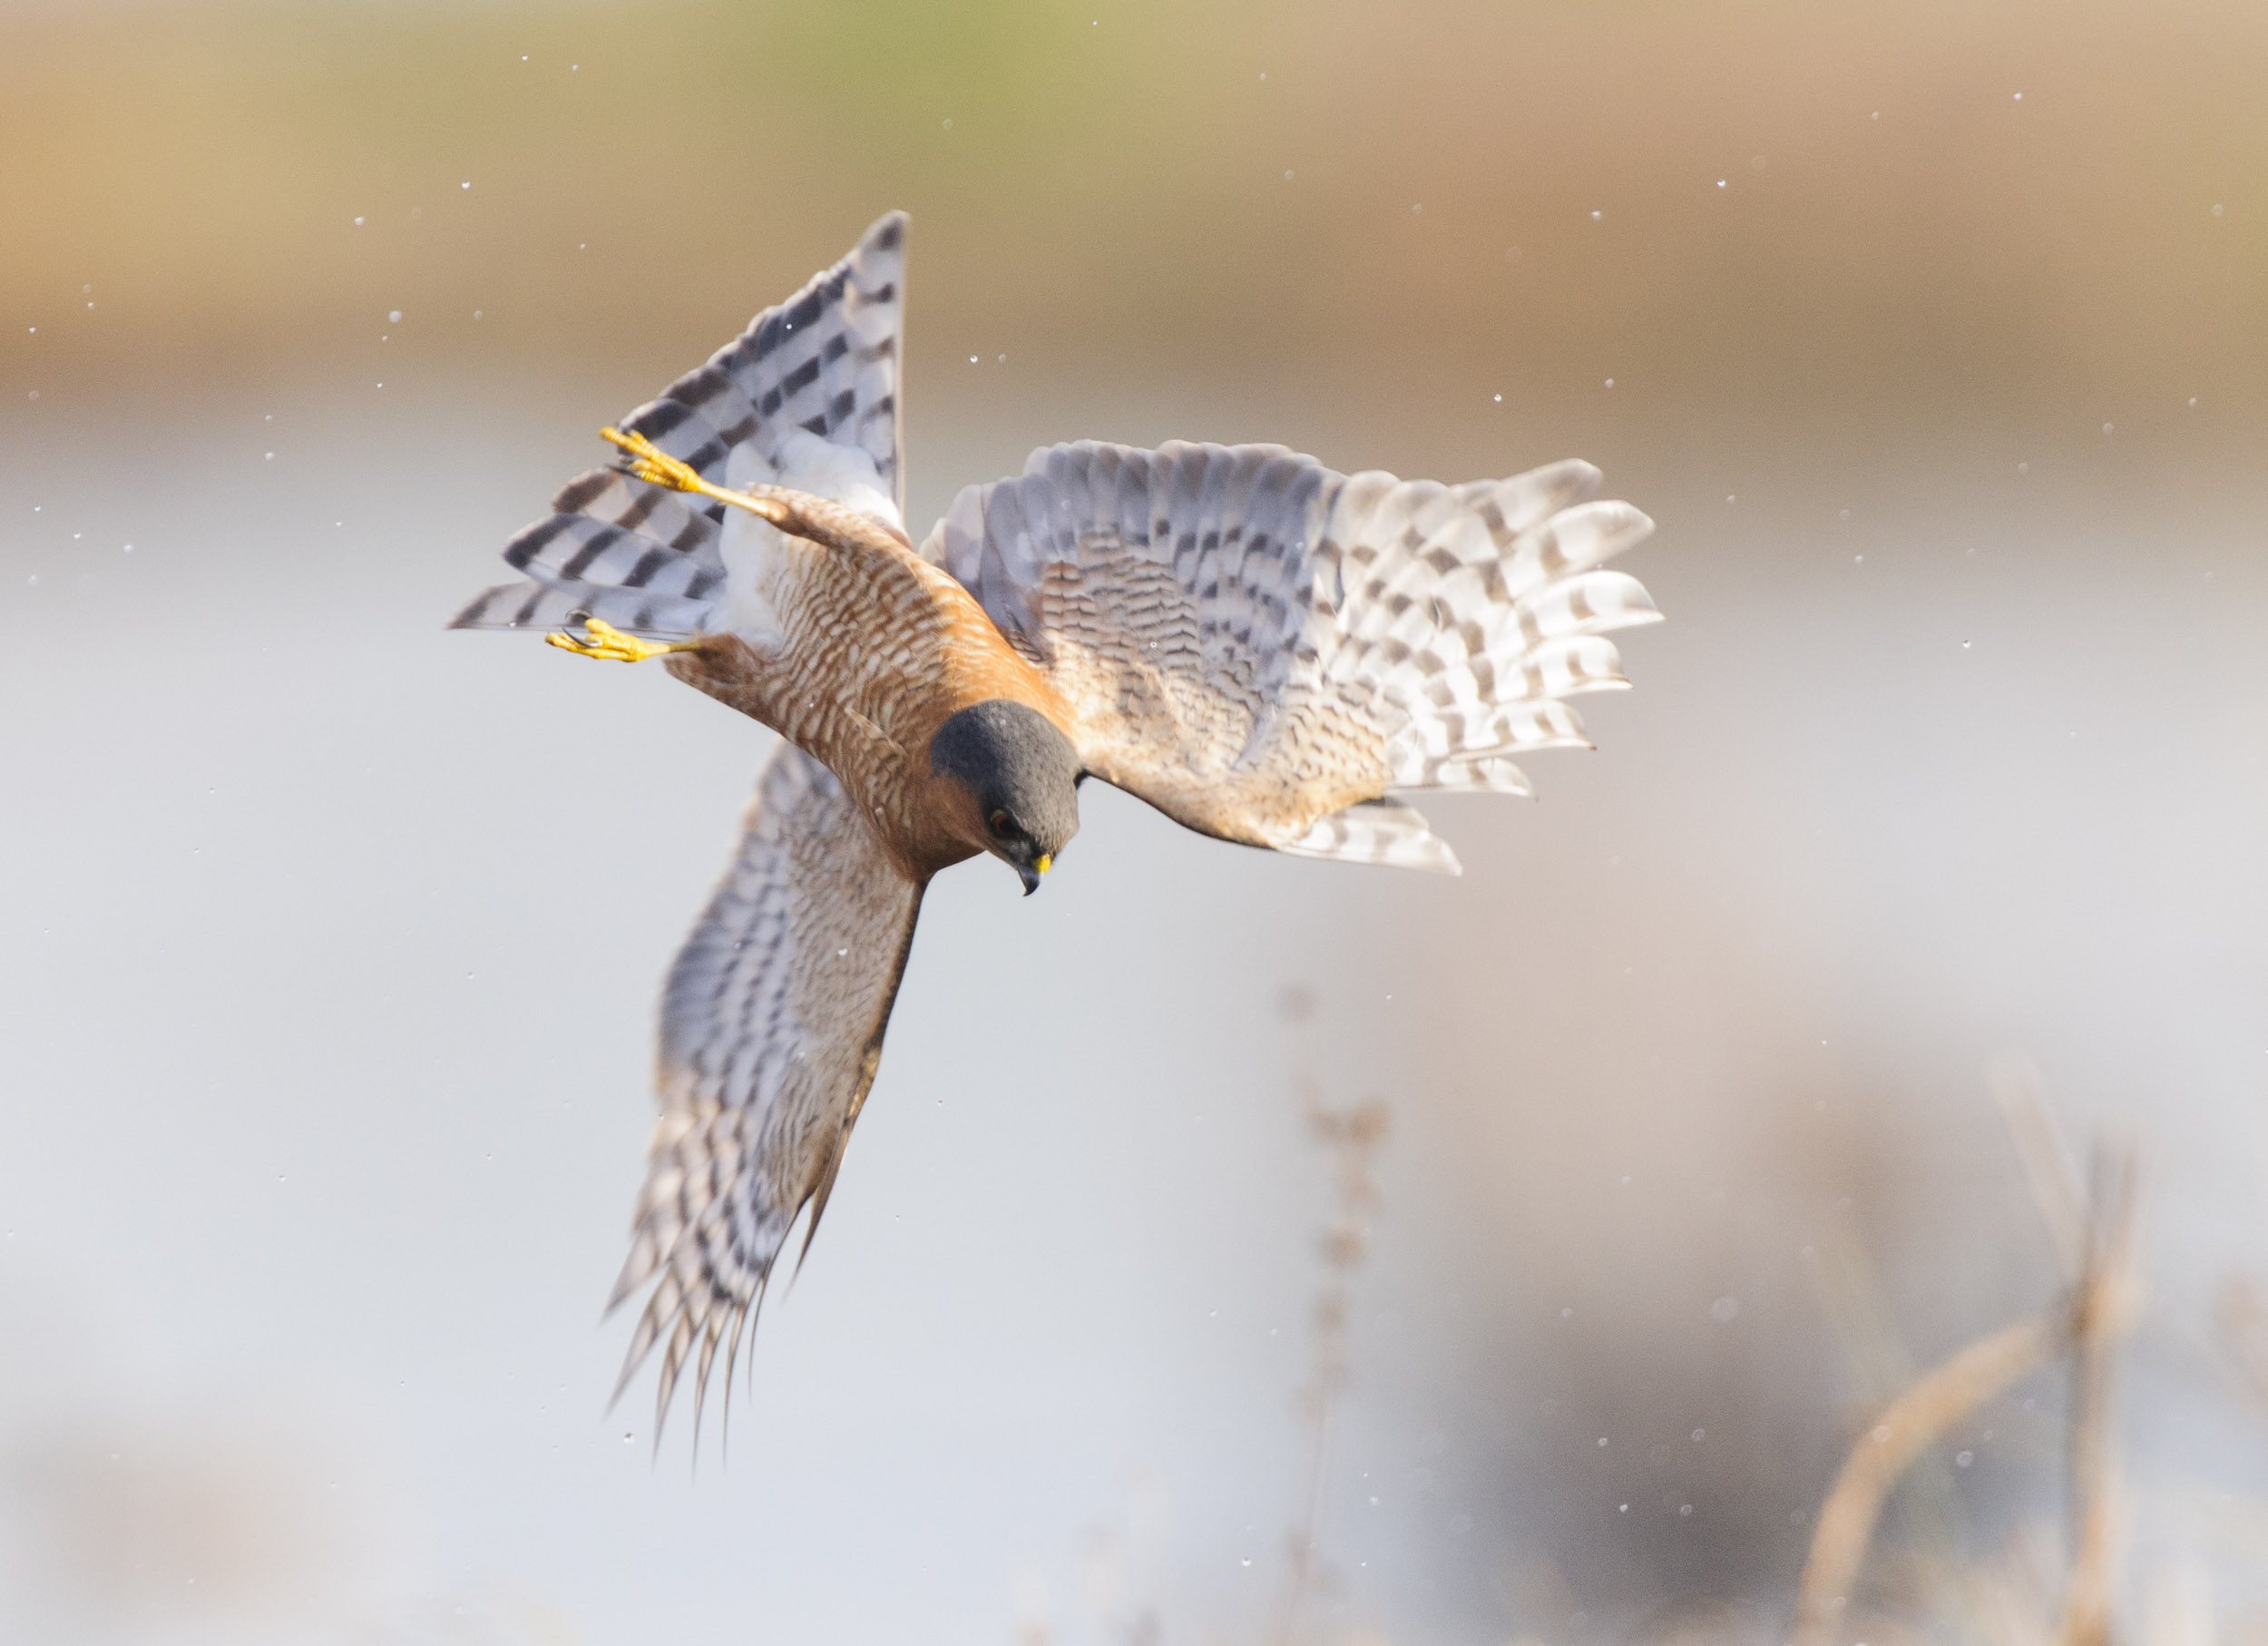 Eurasian Sparrowhawk (Accipiter nisus), hunting snipe over marshland, London, 12/13. Cropped